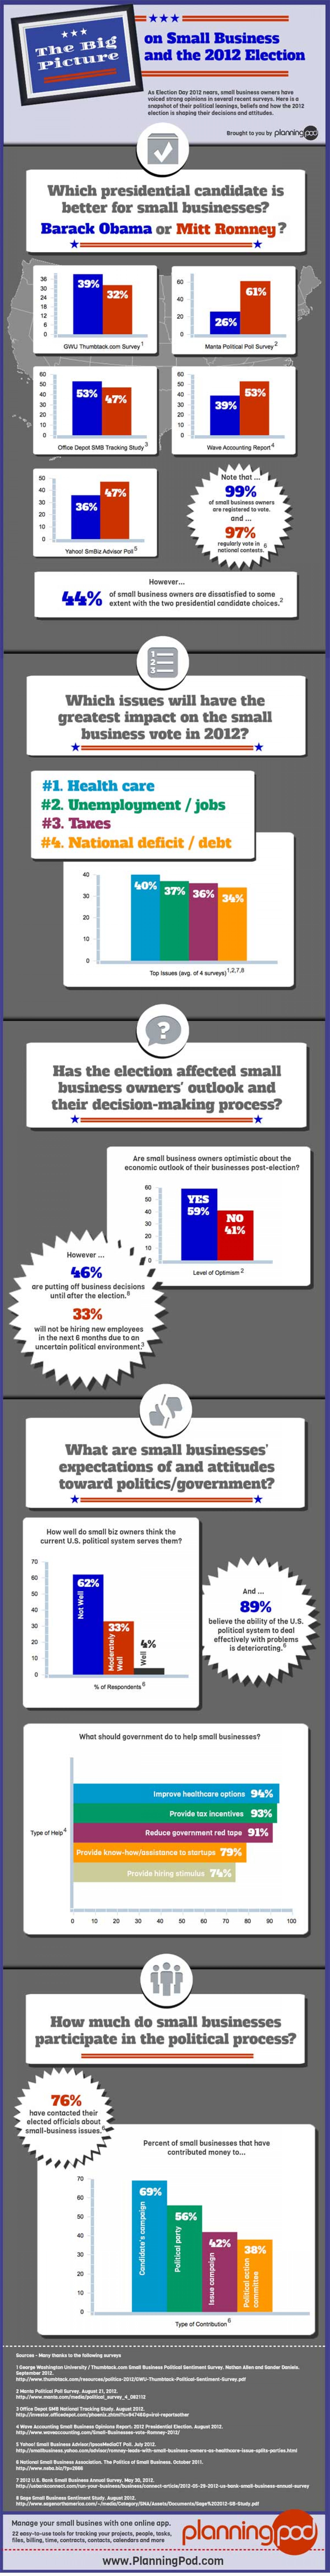 Big Picture on Small Biz and the 2012 Election Infographic